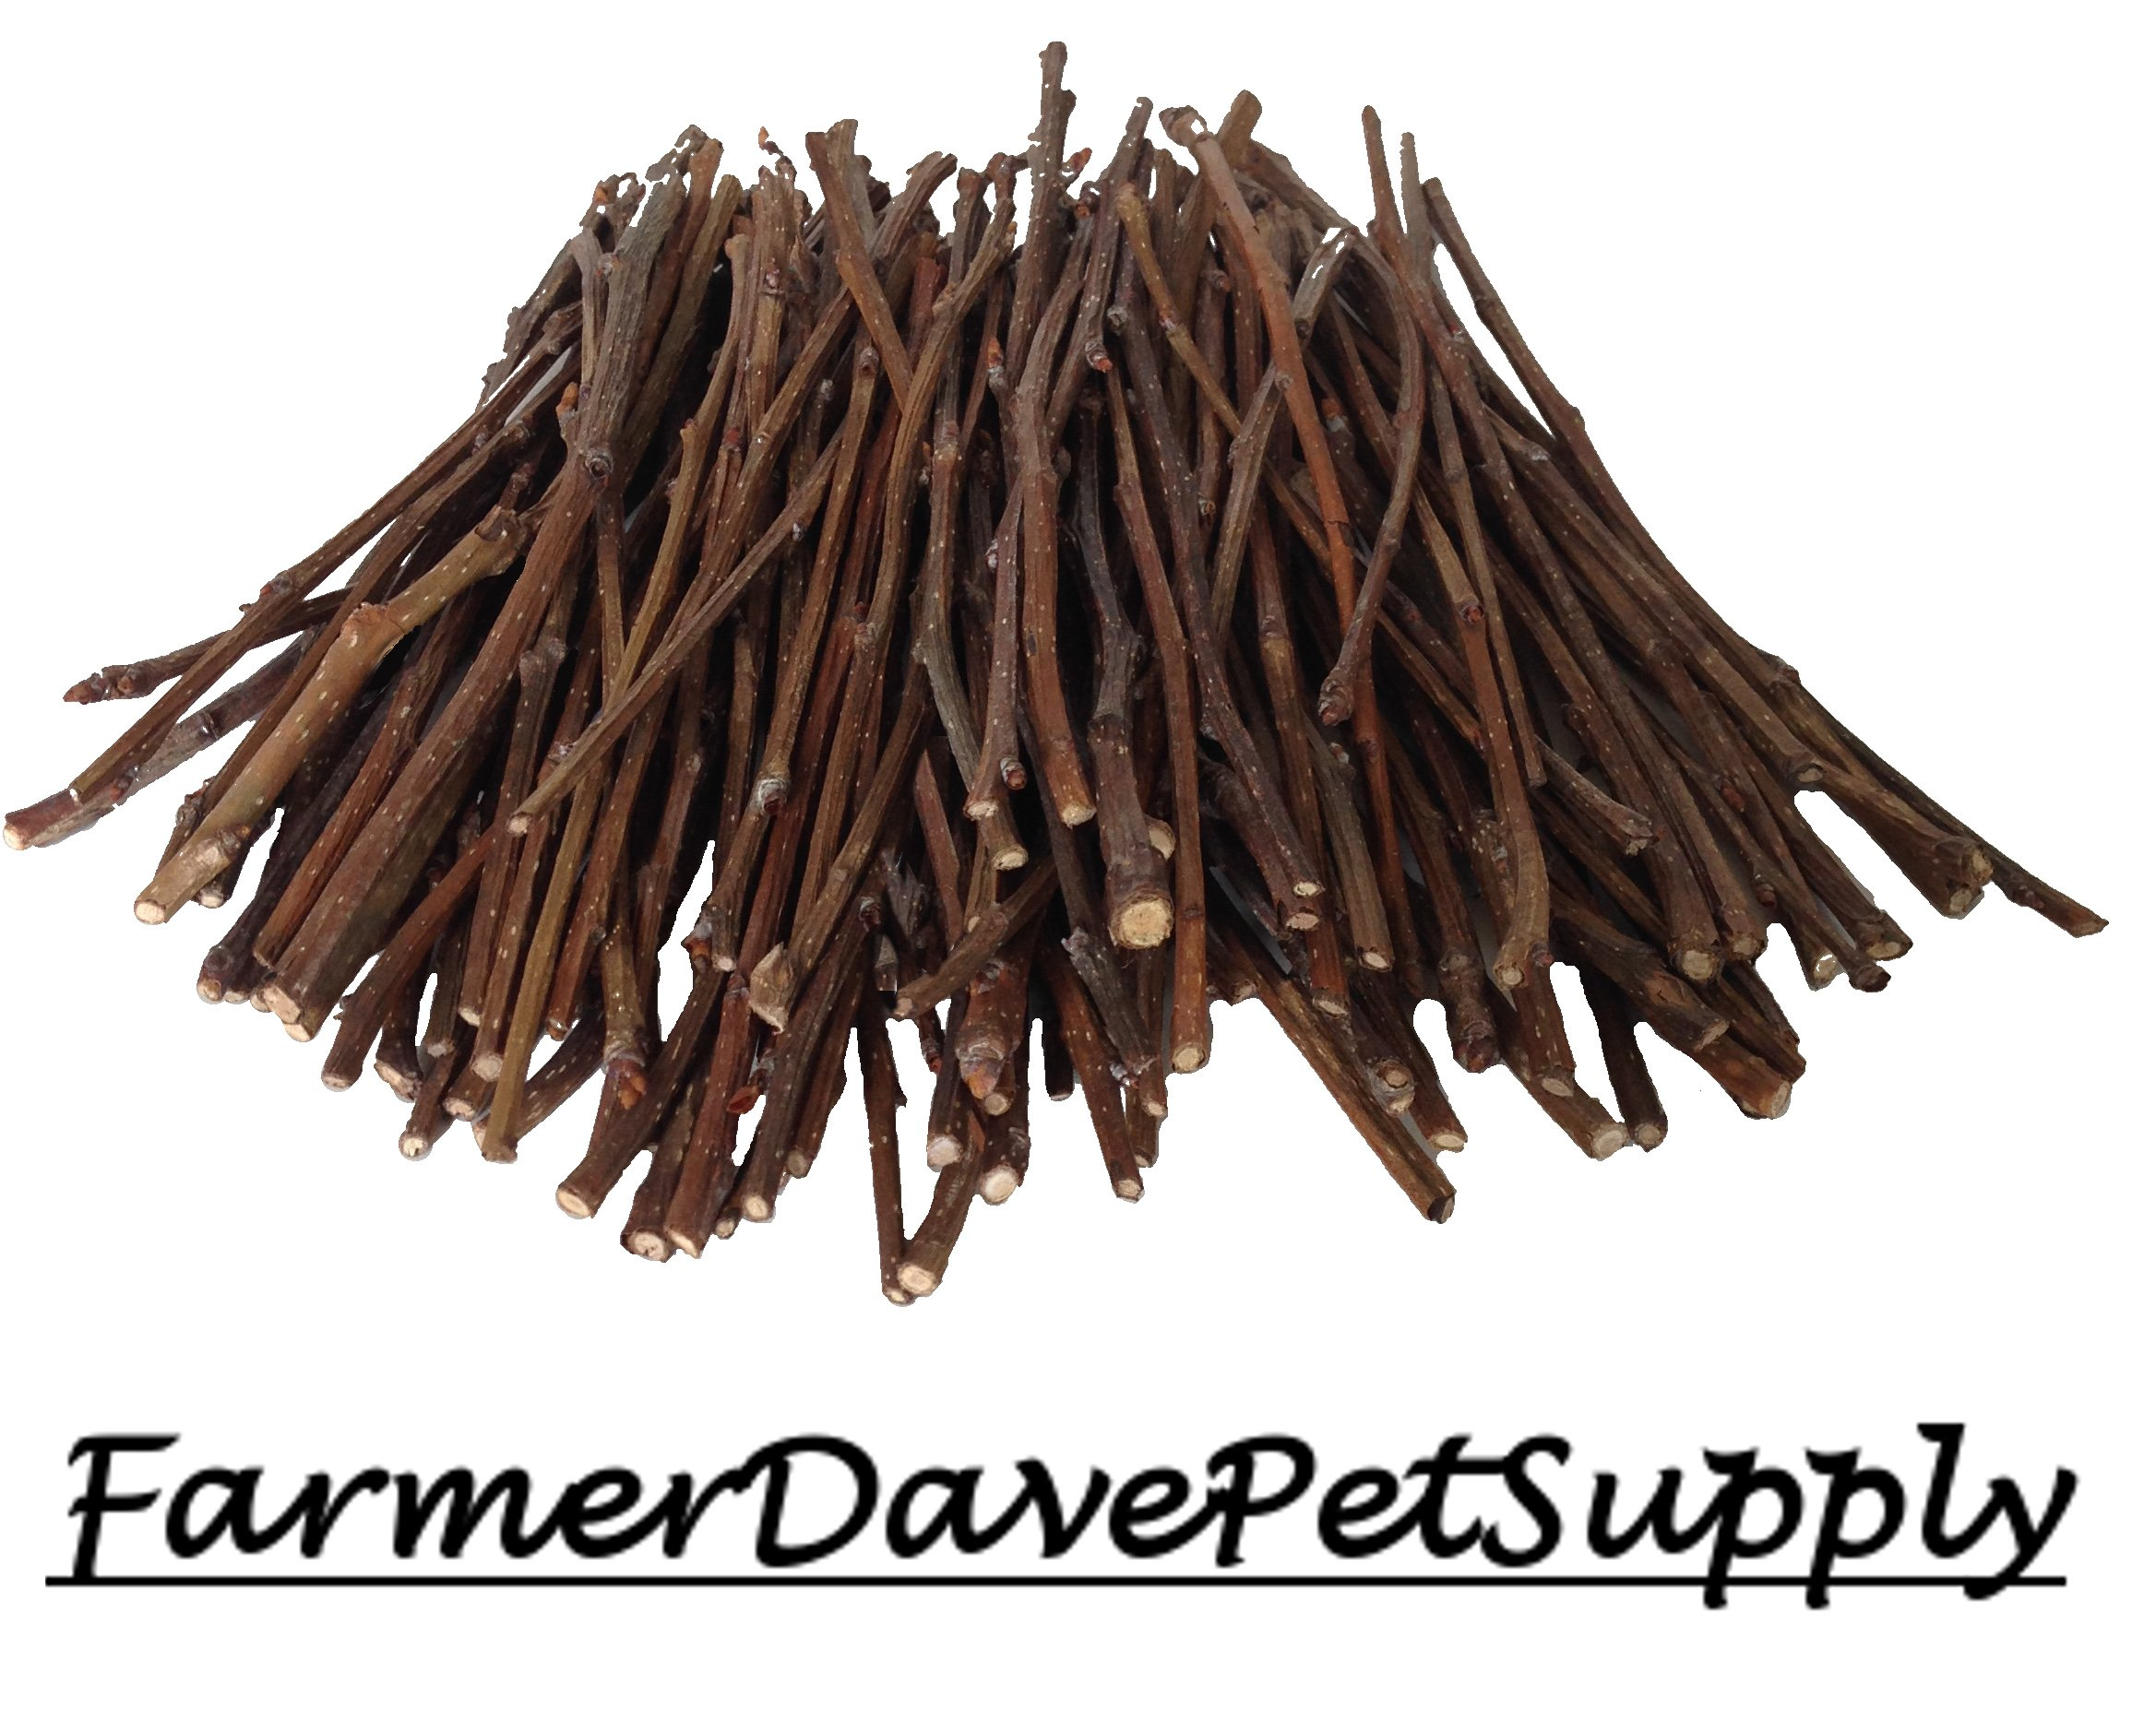 FarmerDavePetSupply 100 Pear Ultra Skinny Chew Twigs for Small Animals by FarmerDavePetSupply